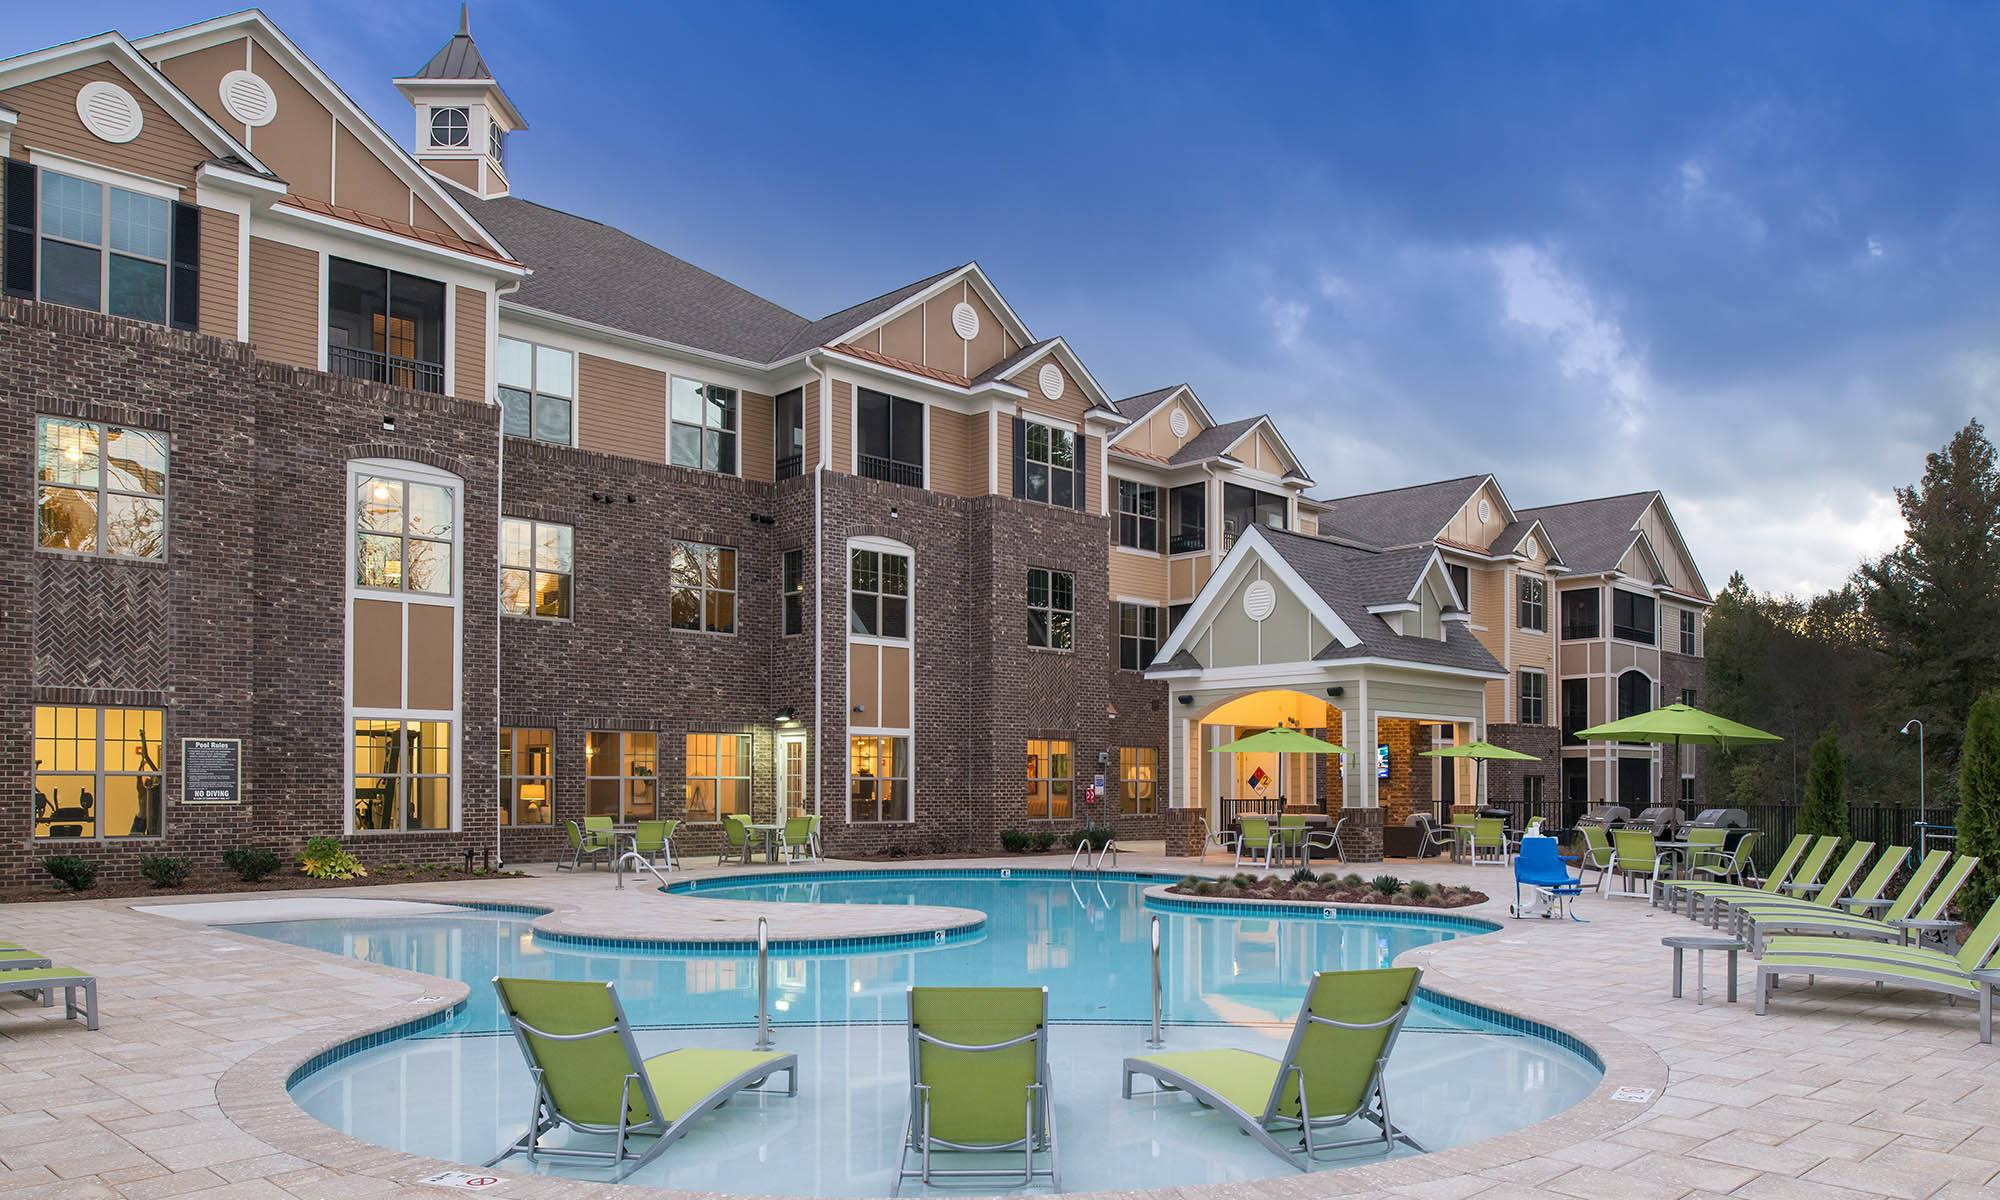 Pool At Apartments In Huntersville